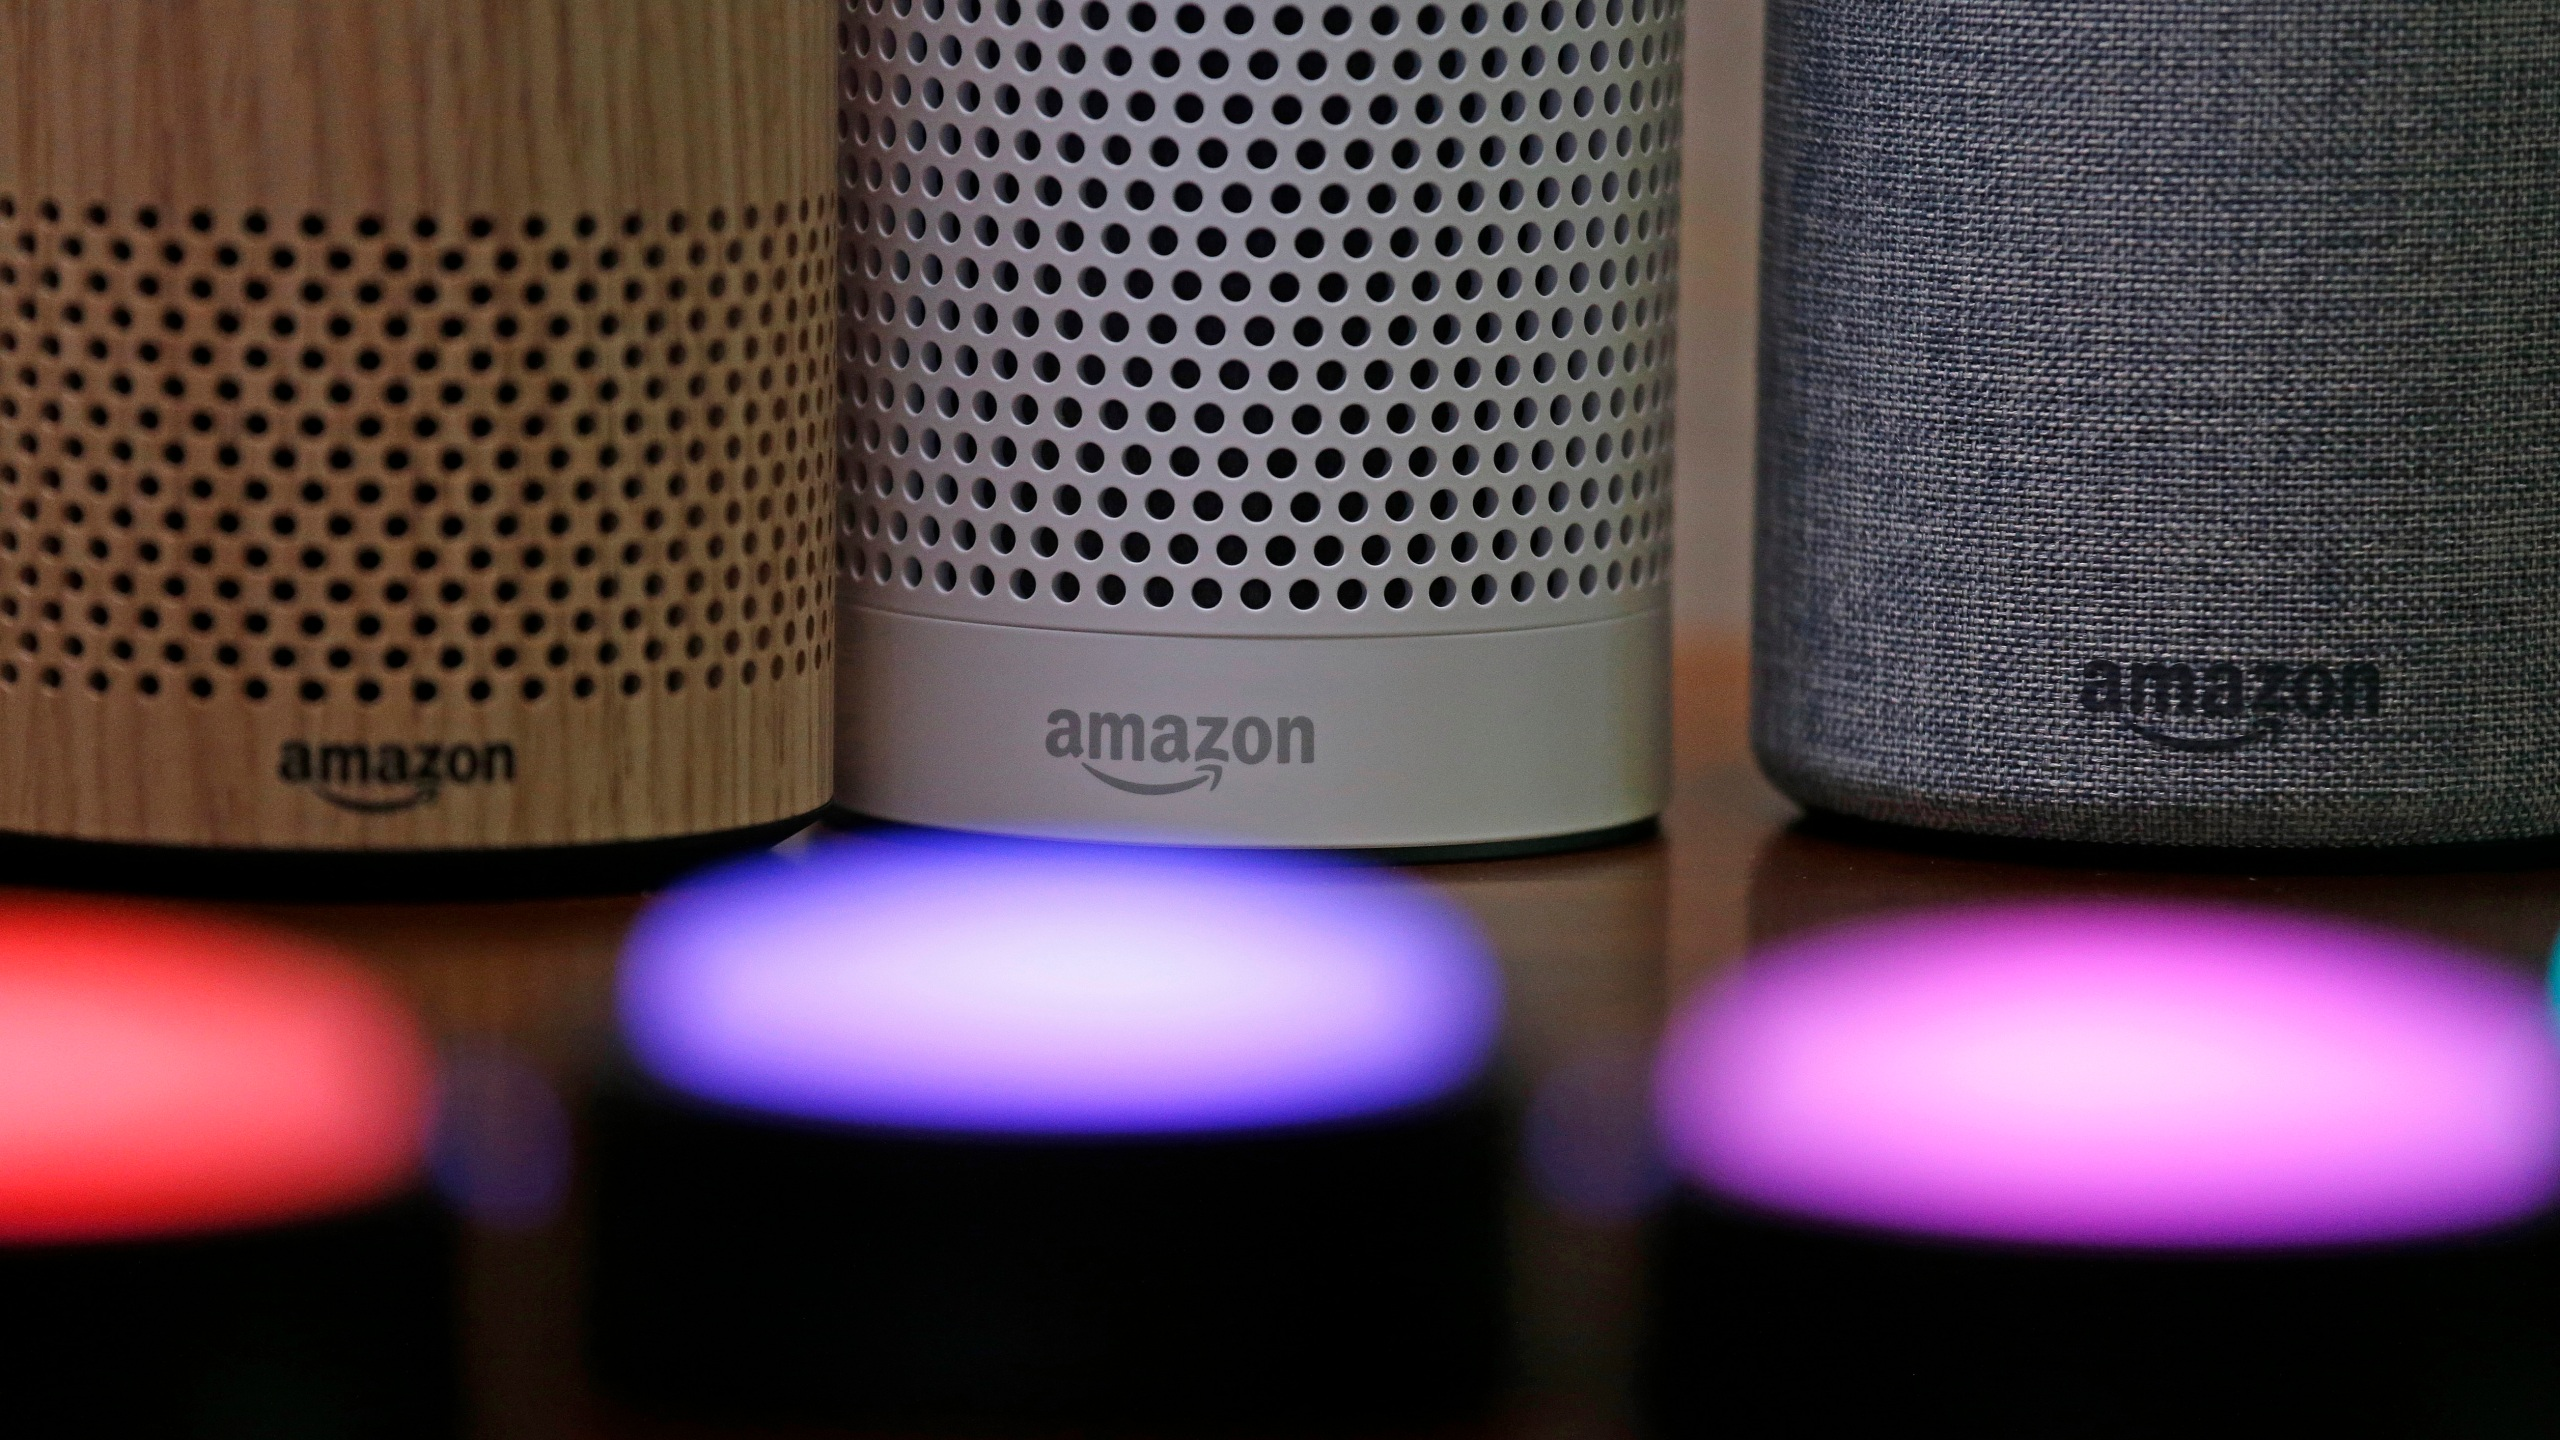 In this Sept. 27, 2017, file photo, Amazon Echo and Echo Plus devices, behind, sit near illuminated Echo Button devices during an event announcing several new Amazon products by the company in Seattle. Users of Amazon's Alexa digital assistant can now request that recordings of their voice commands delete automatically. (AP Photo/Elaine Thompson, File)